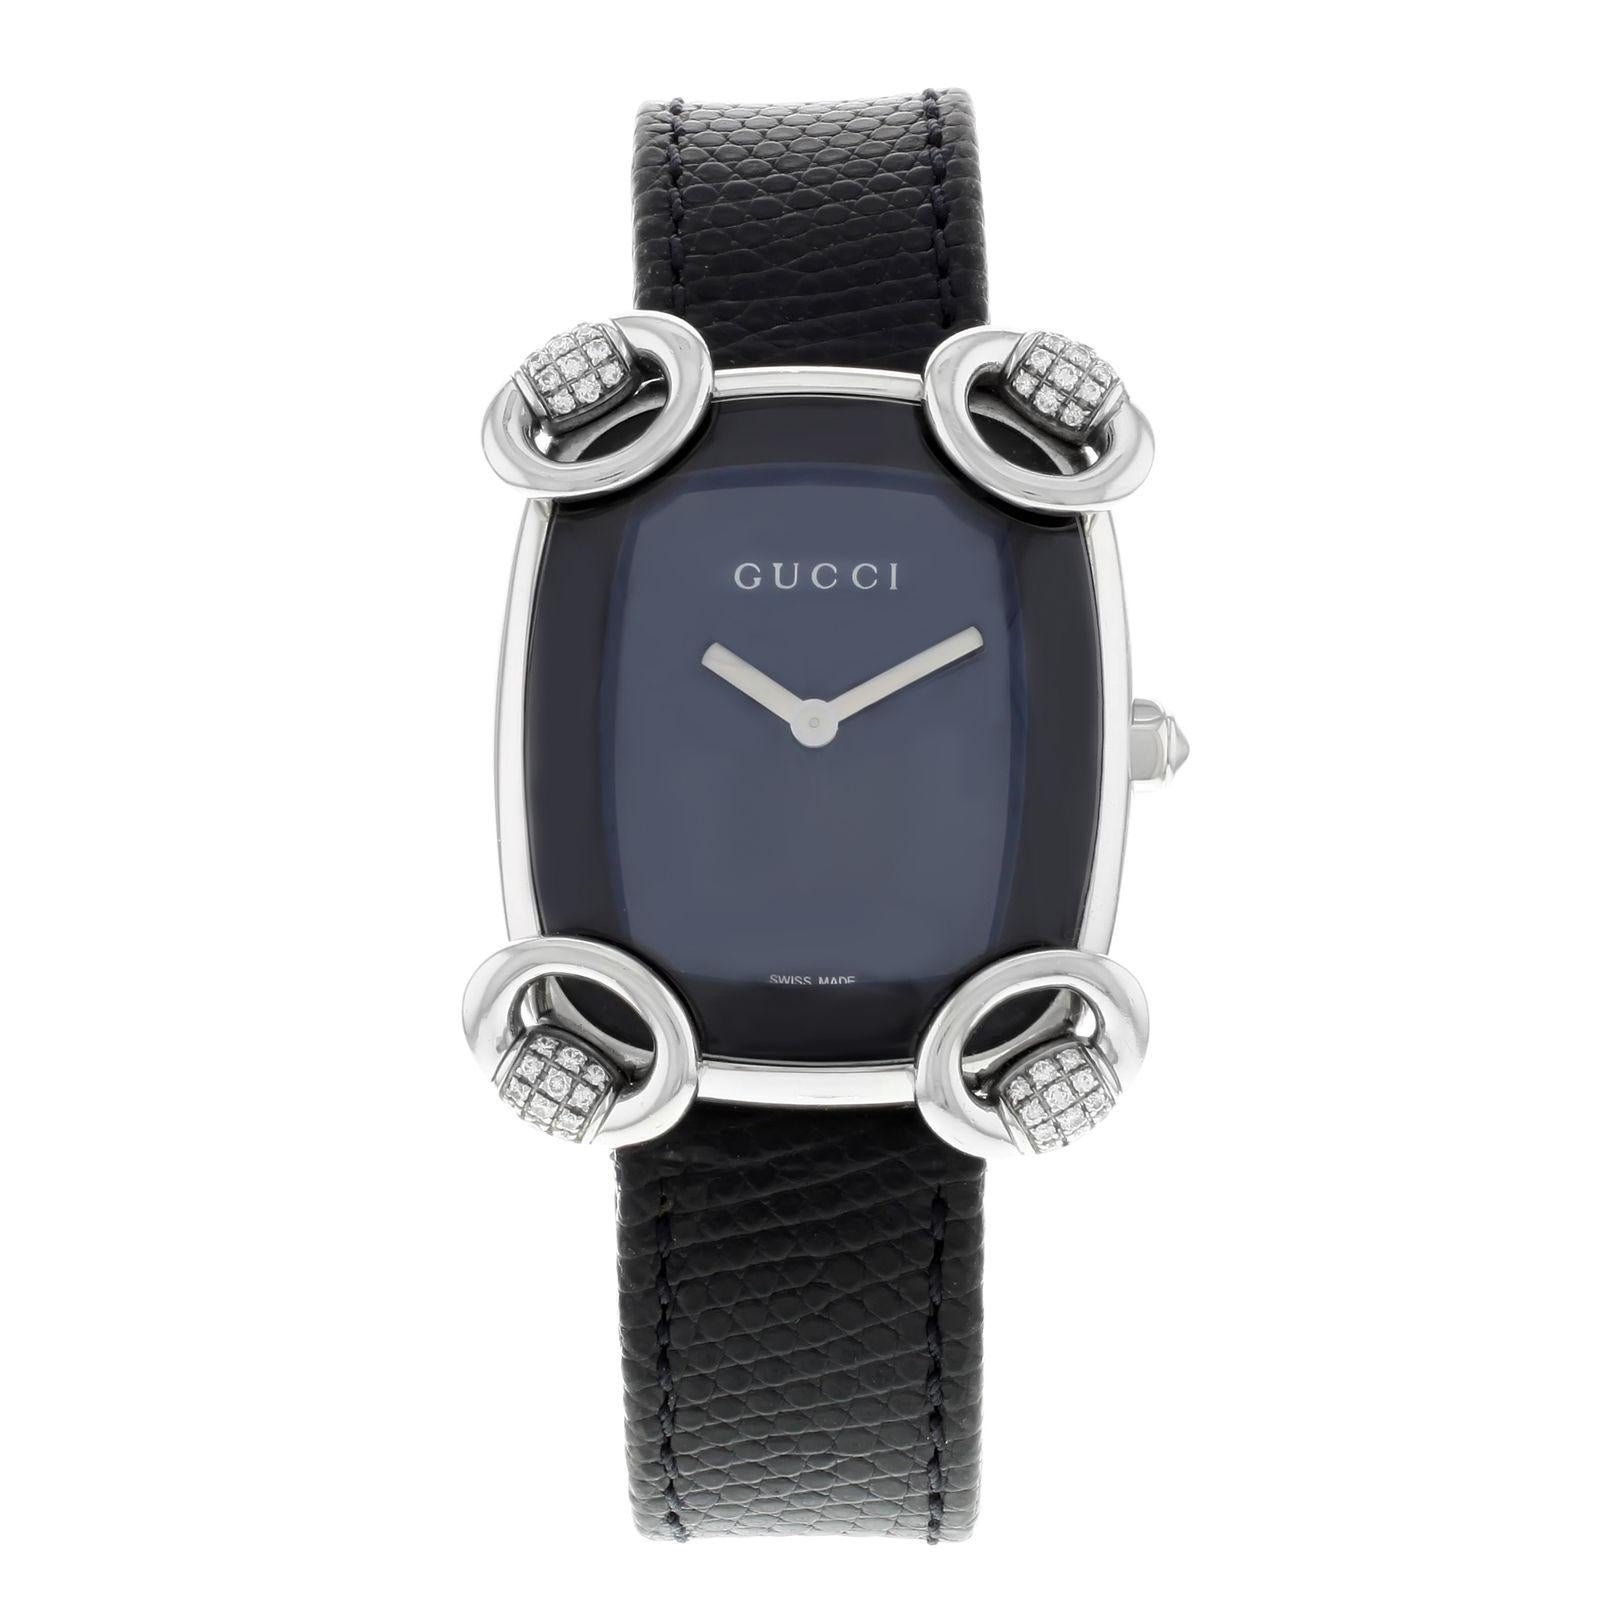 88bf7b5e9b0 Gucci 5500L White Dial Two-Tone Stainless Steel Quartz Ladies Watch YA055528  For Sale at 1stdibs